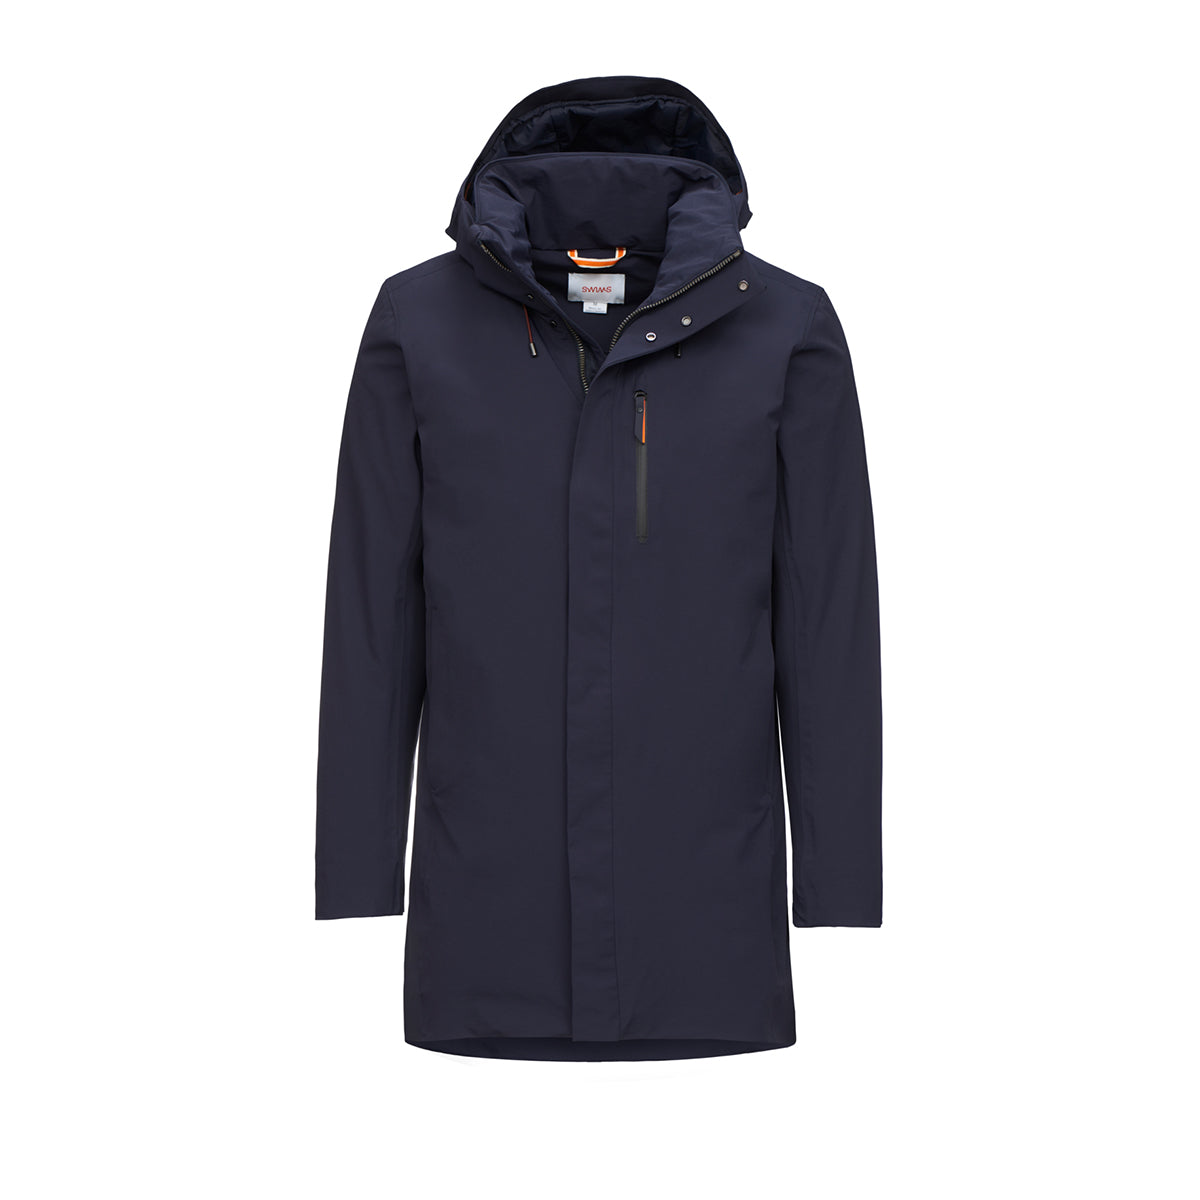 Grenoble II Parka - background::white,variant::navy